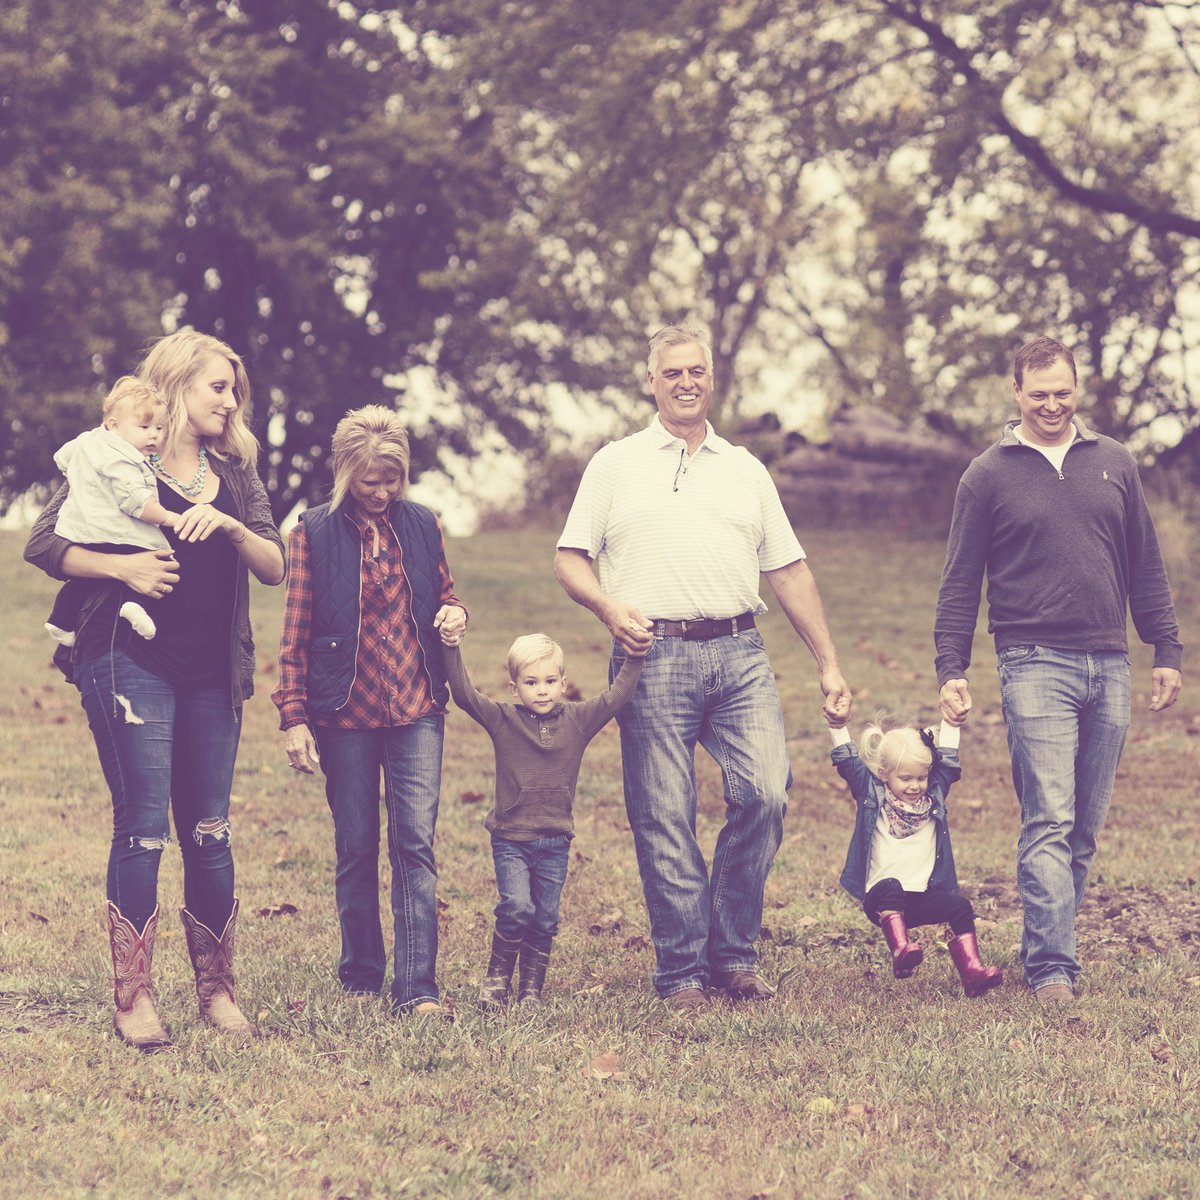 """""""Our family's been here before this town even existed, farming for seven-going-on-eight generations now. The work connects me to my past, and I'd be thrilled if my kids choose to carry it on someday.""""  – Scott Sands and the Sands Family, Indiana Kitchen farmers  #MyBrandIsIndiana https://t.co/yaRD0h3Vll"""